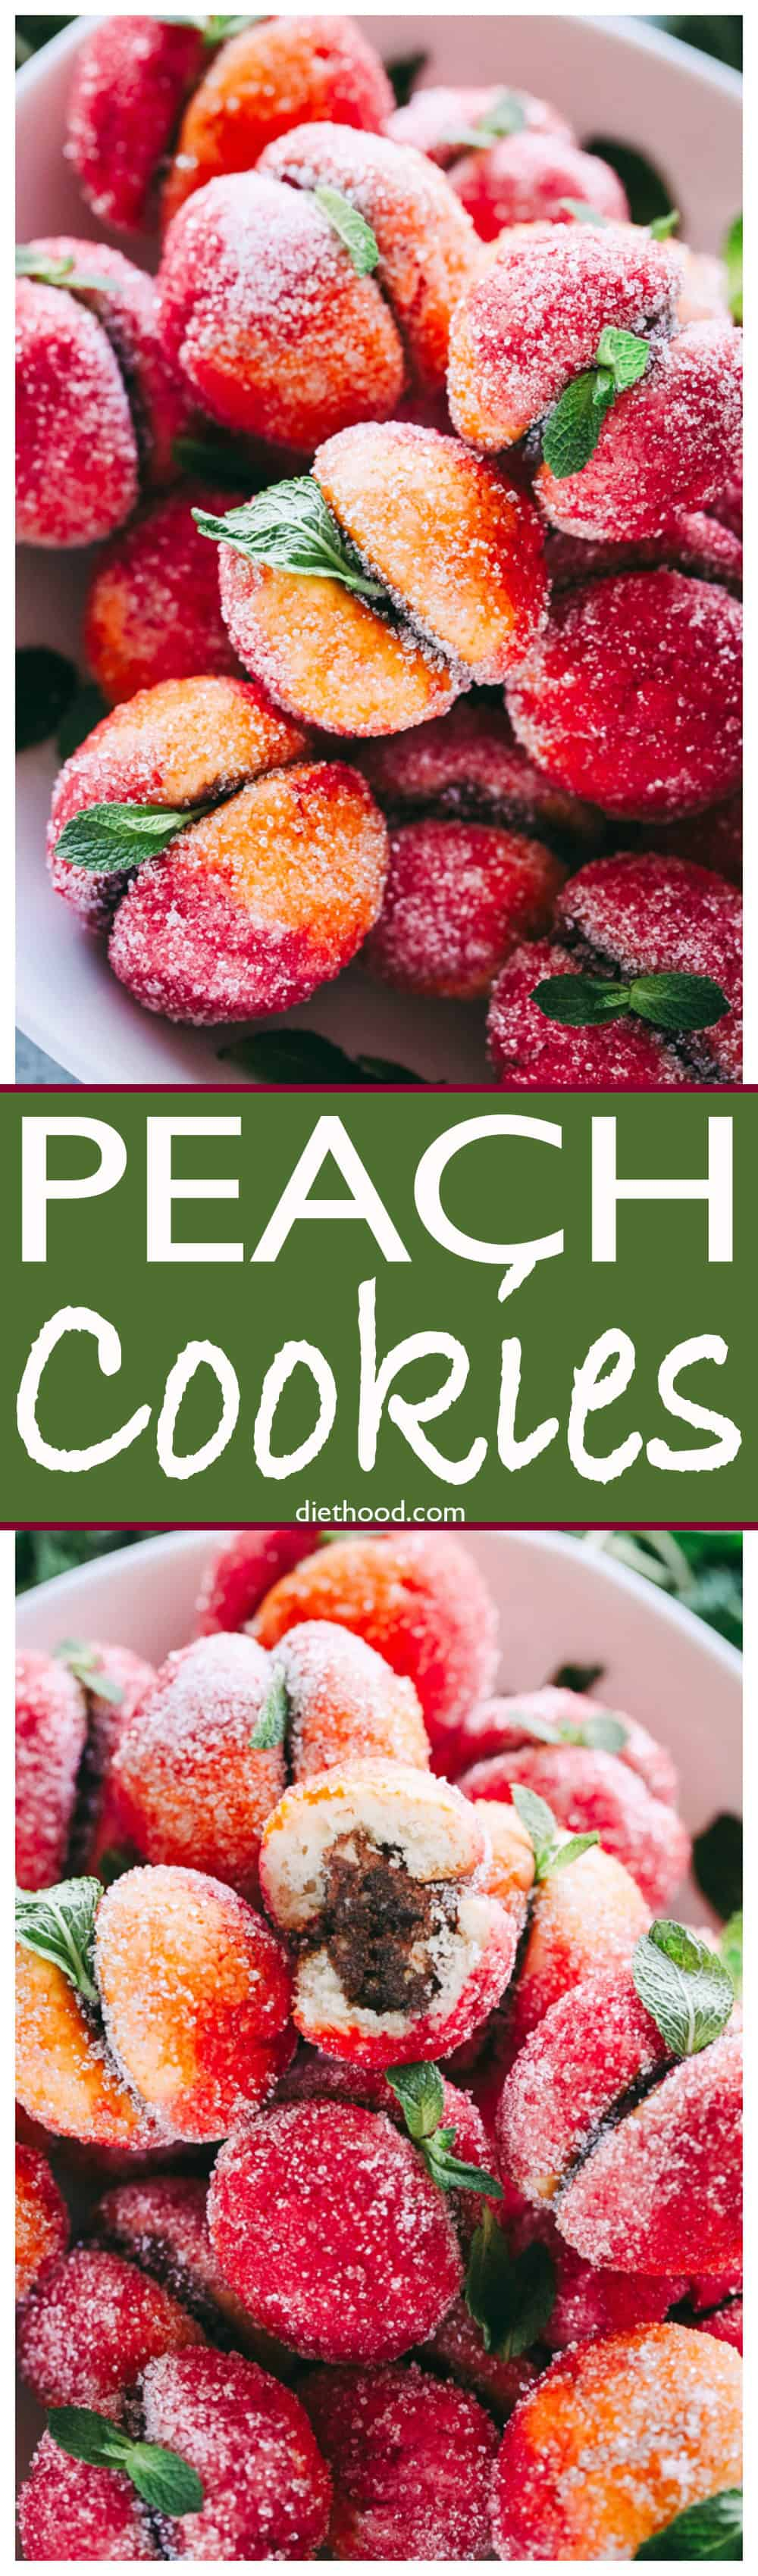 Peach Cookies - Nutella filled sandwich cookies that look like peaches! These #cookies are a show stopper and will look beautiful on your #Holiday cookie tray. #Christmas